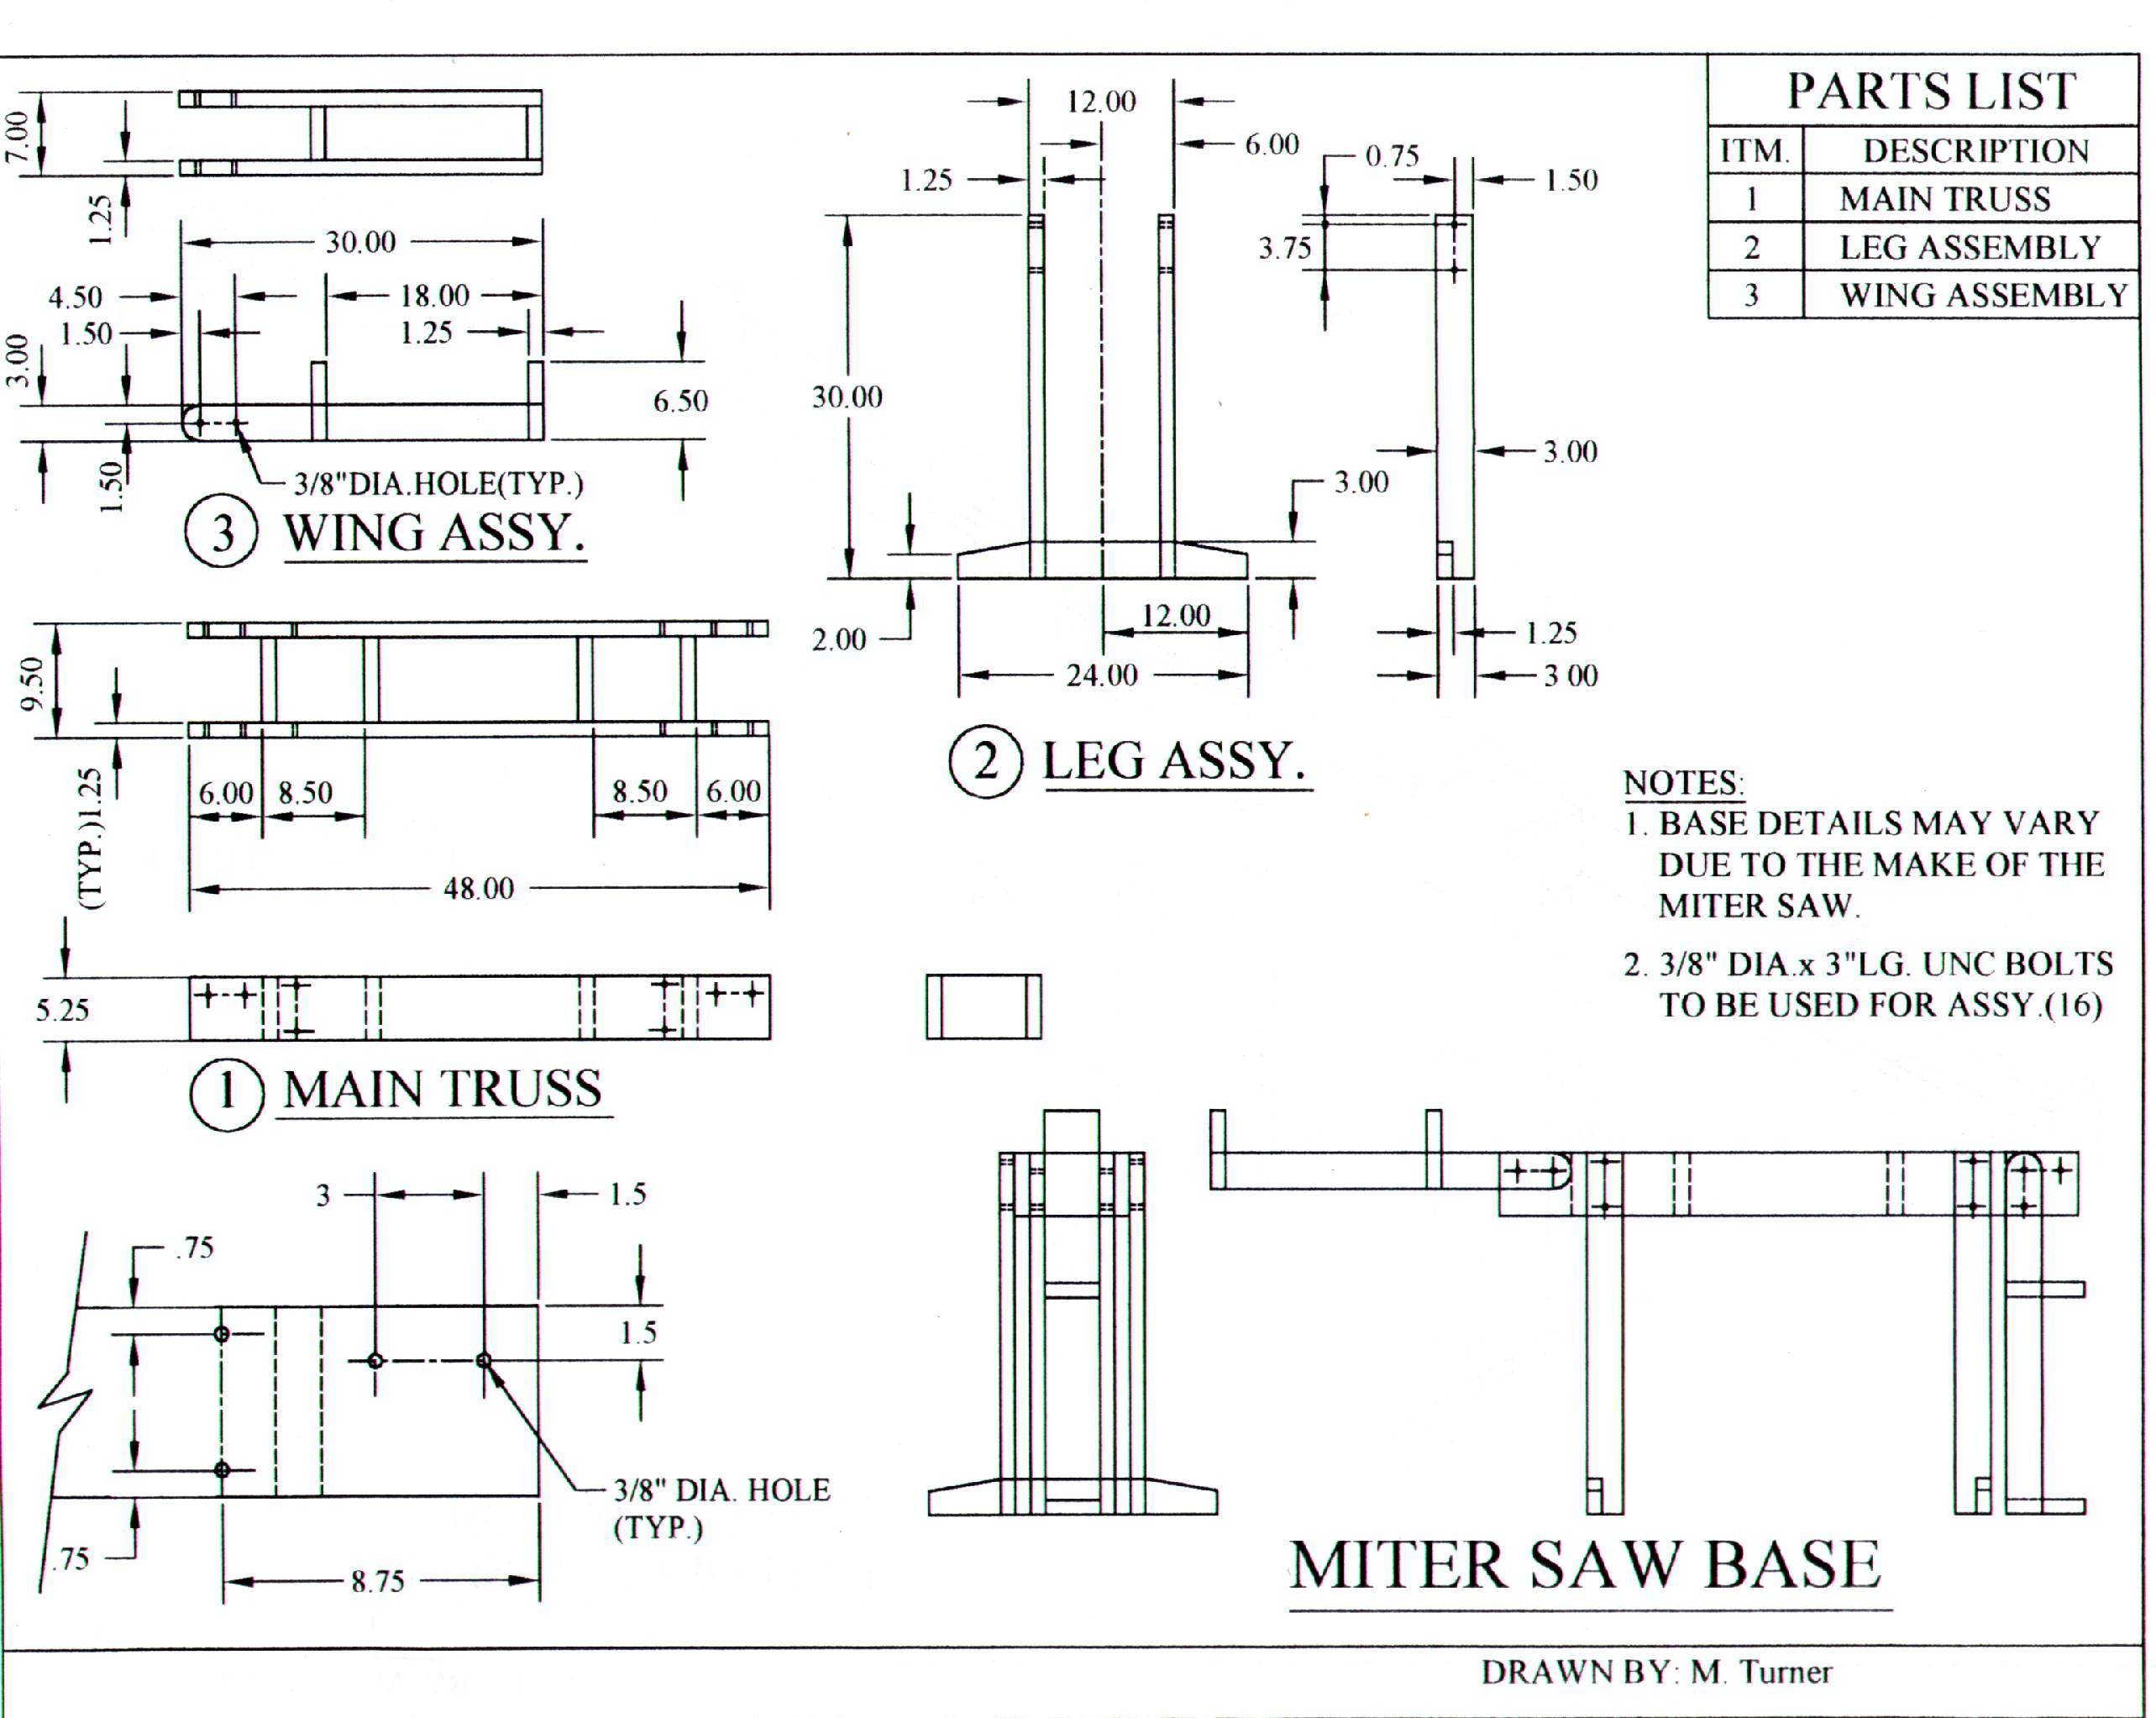 home depot free miter saw stand with Instant Get Miter Saw Plans Bench on 204512007 furthermore 825484 further 121178982682 furthermore Rolling Folding Tables moreover Instant Get Miter Saw Plans Bench.